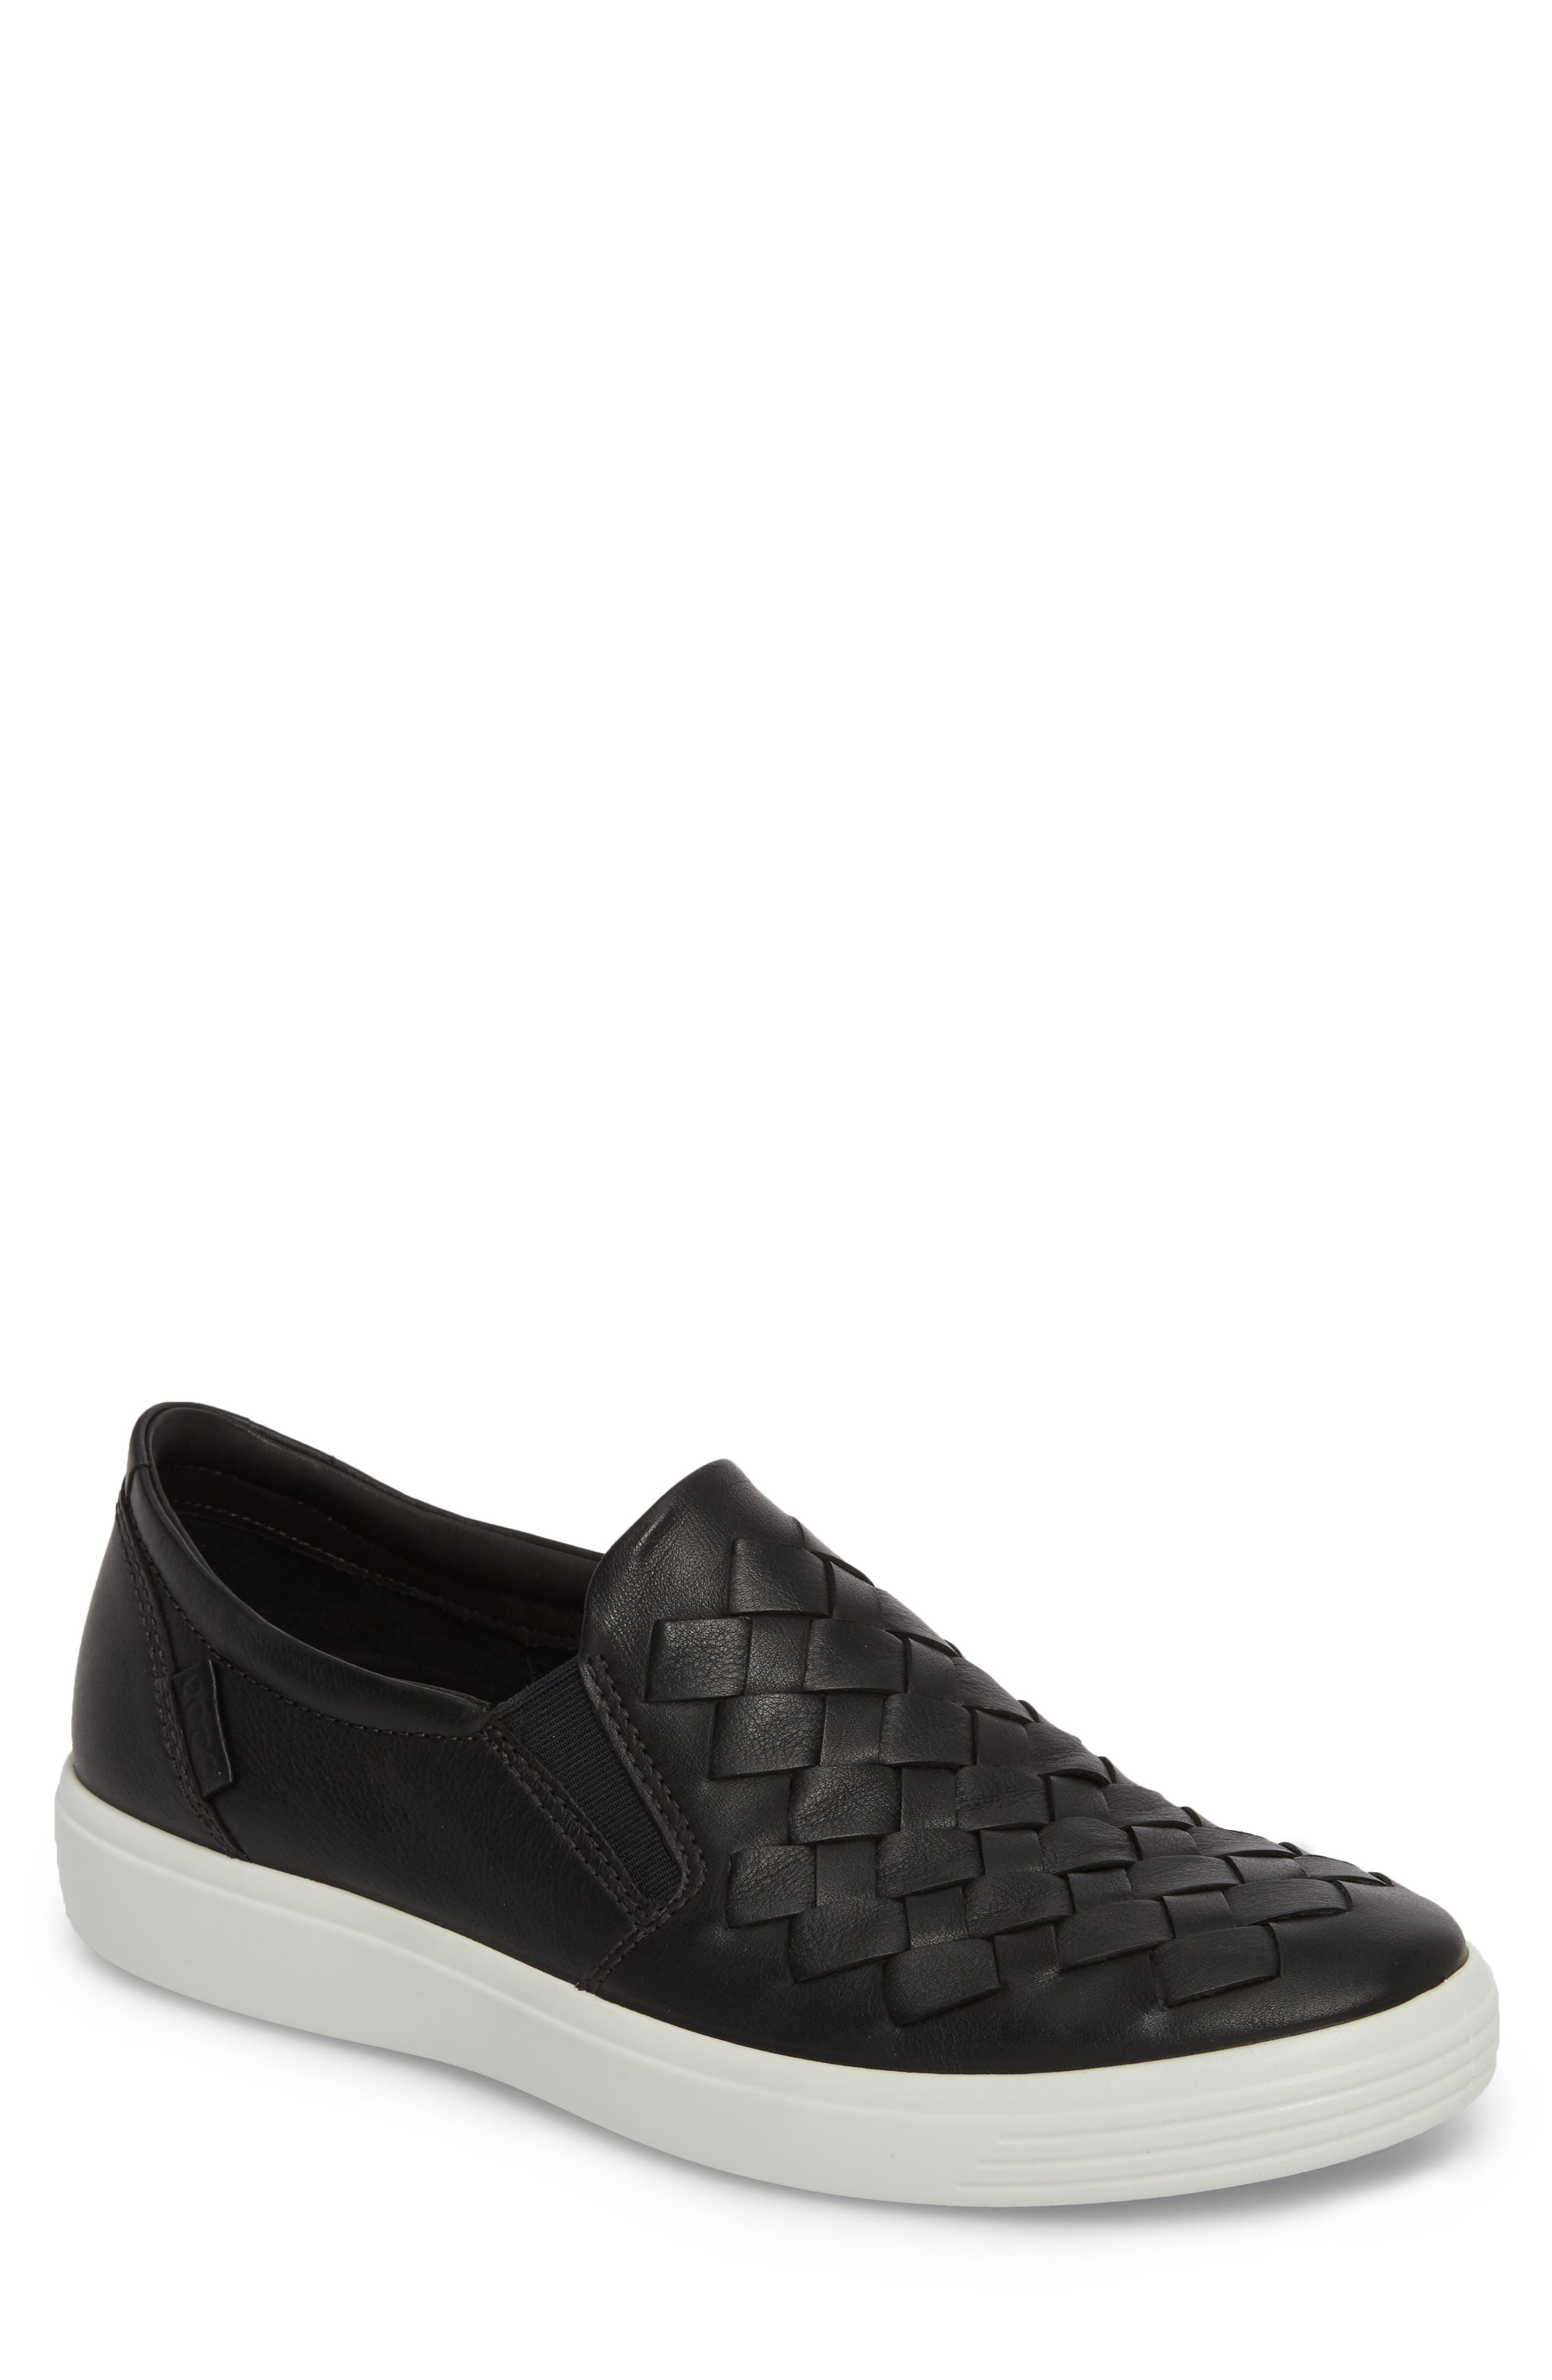 Soft 7 Woven Slip-On Sneaker,                         Main,                         color, Black Leather